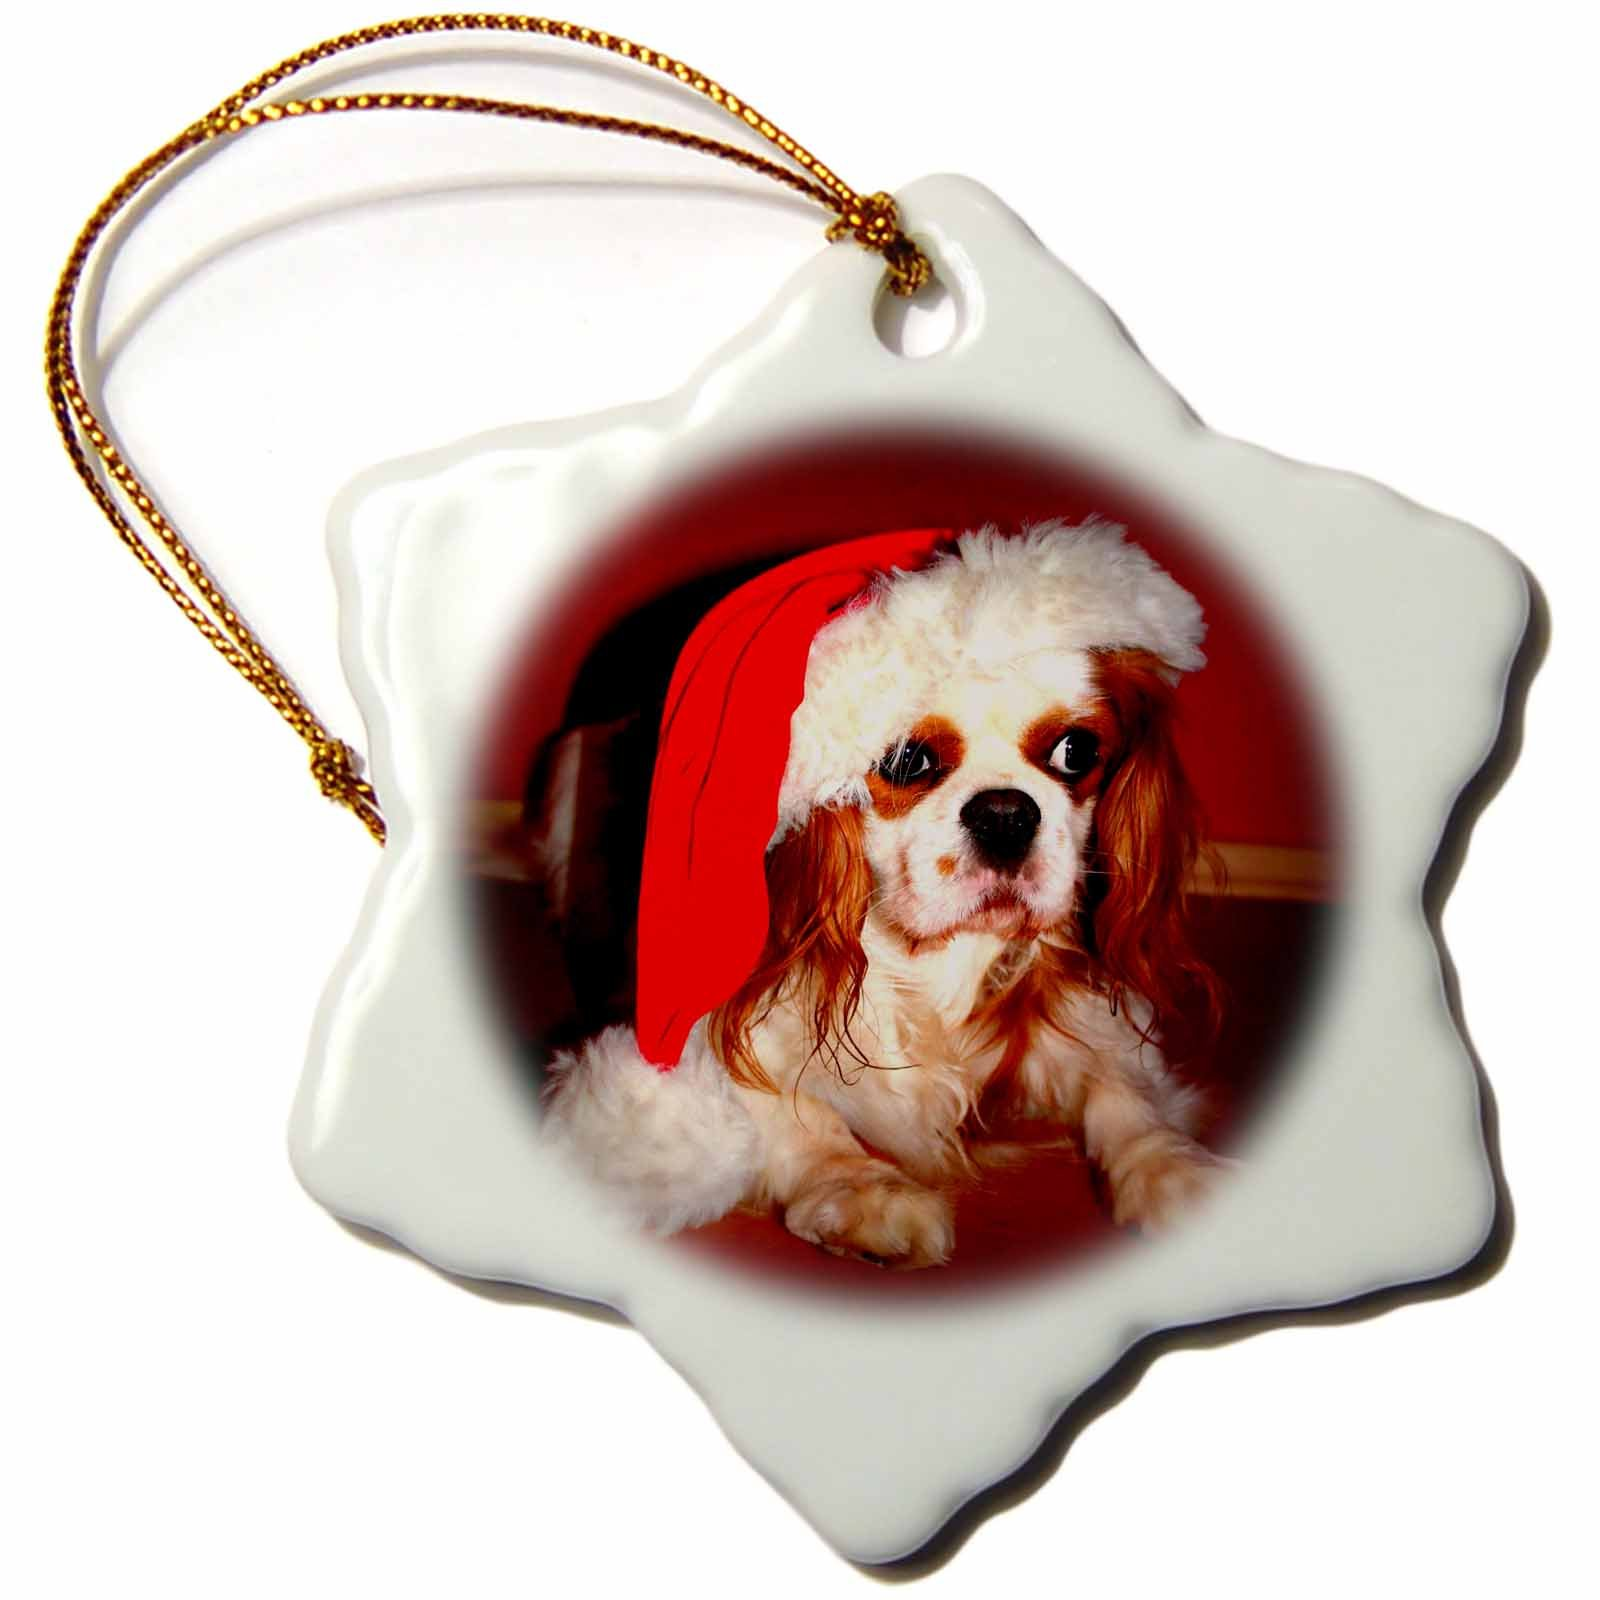 3dRose Sandy Mertens Christmas Animals - Christmas Hat on Adorable Cavalier King Charles Spaniel Dog - 3 inch Snowflake Porcelain Ornament (orn_269510_1)